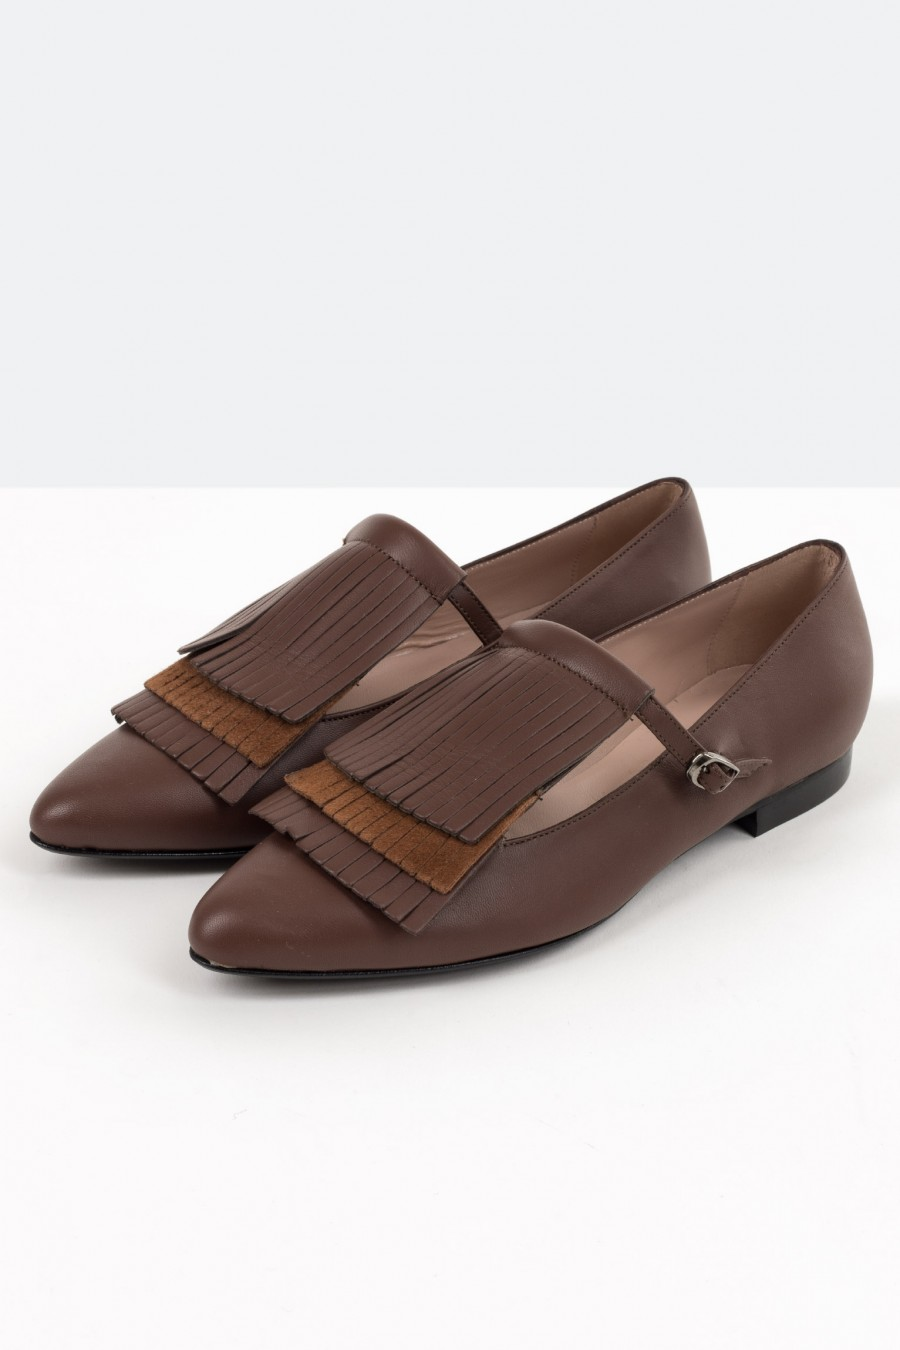 Brown flat shoes with fringe